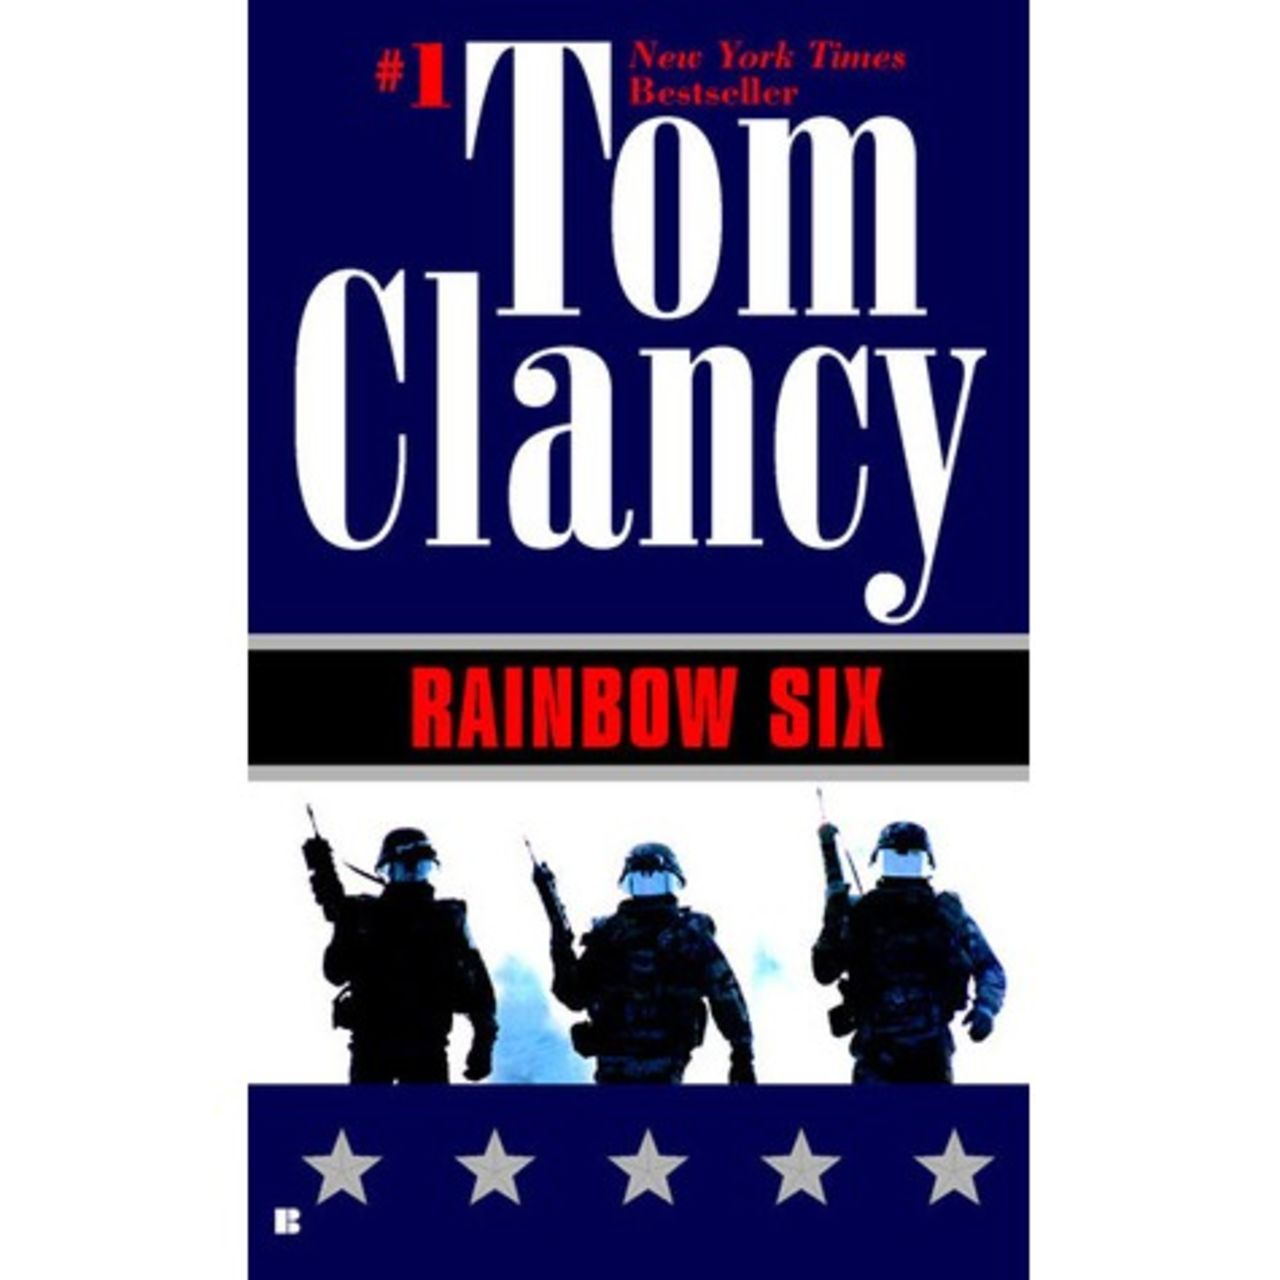 literary analysis of the book rainbow six by tom clancy Tom clancy's rainbow six title: rainbow six author: tom clancy # of pages: 740 characters: john clark an ex navy seal, and two other characters alistair stanley the executive commander of rainbow six, and domingo (ding) chavez, the captain of team two.